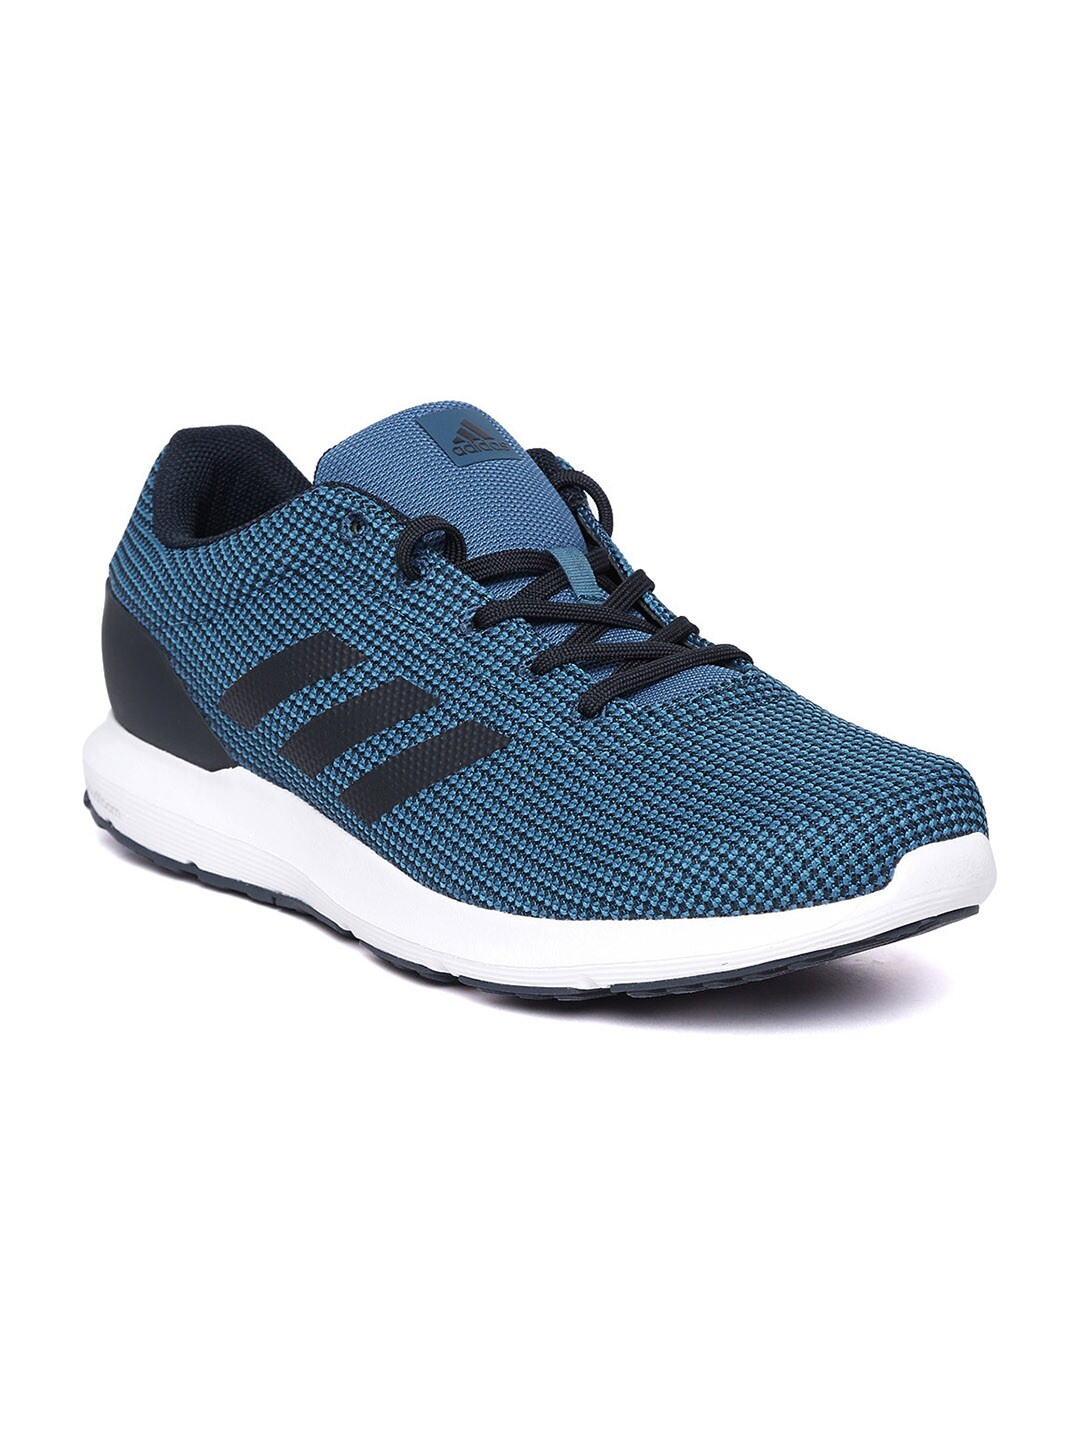 cheap for discount 7515d c4876 Adidas Sports Shoes - Buy Addidas Sports Shoes Online   Myntra